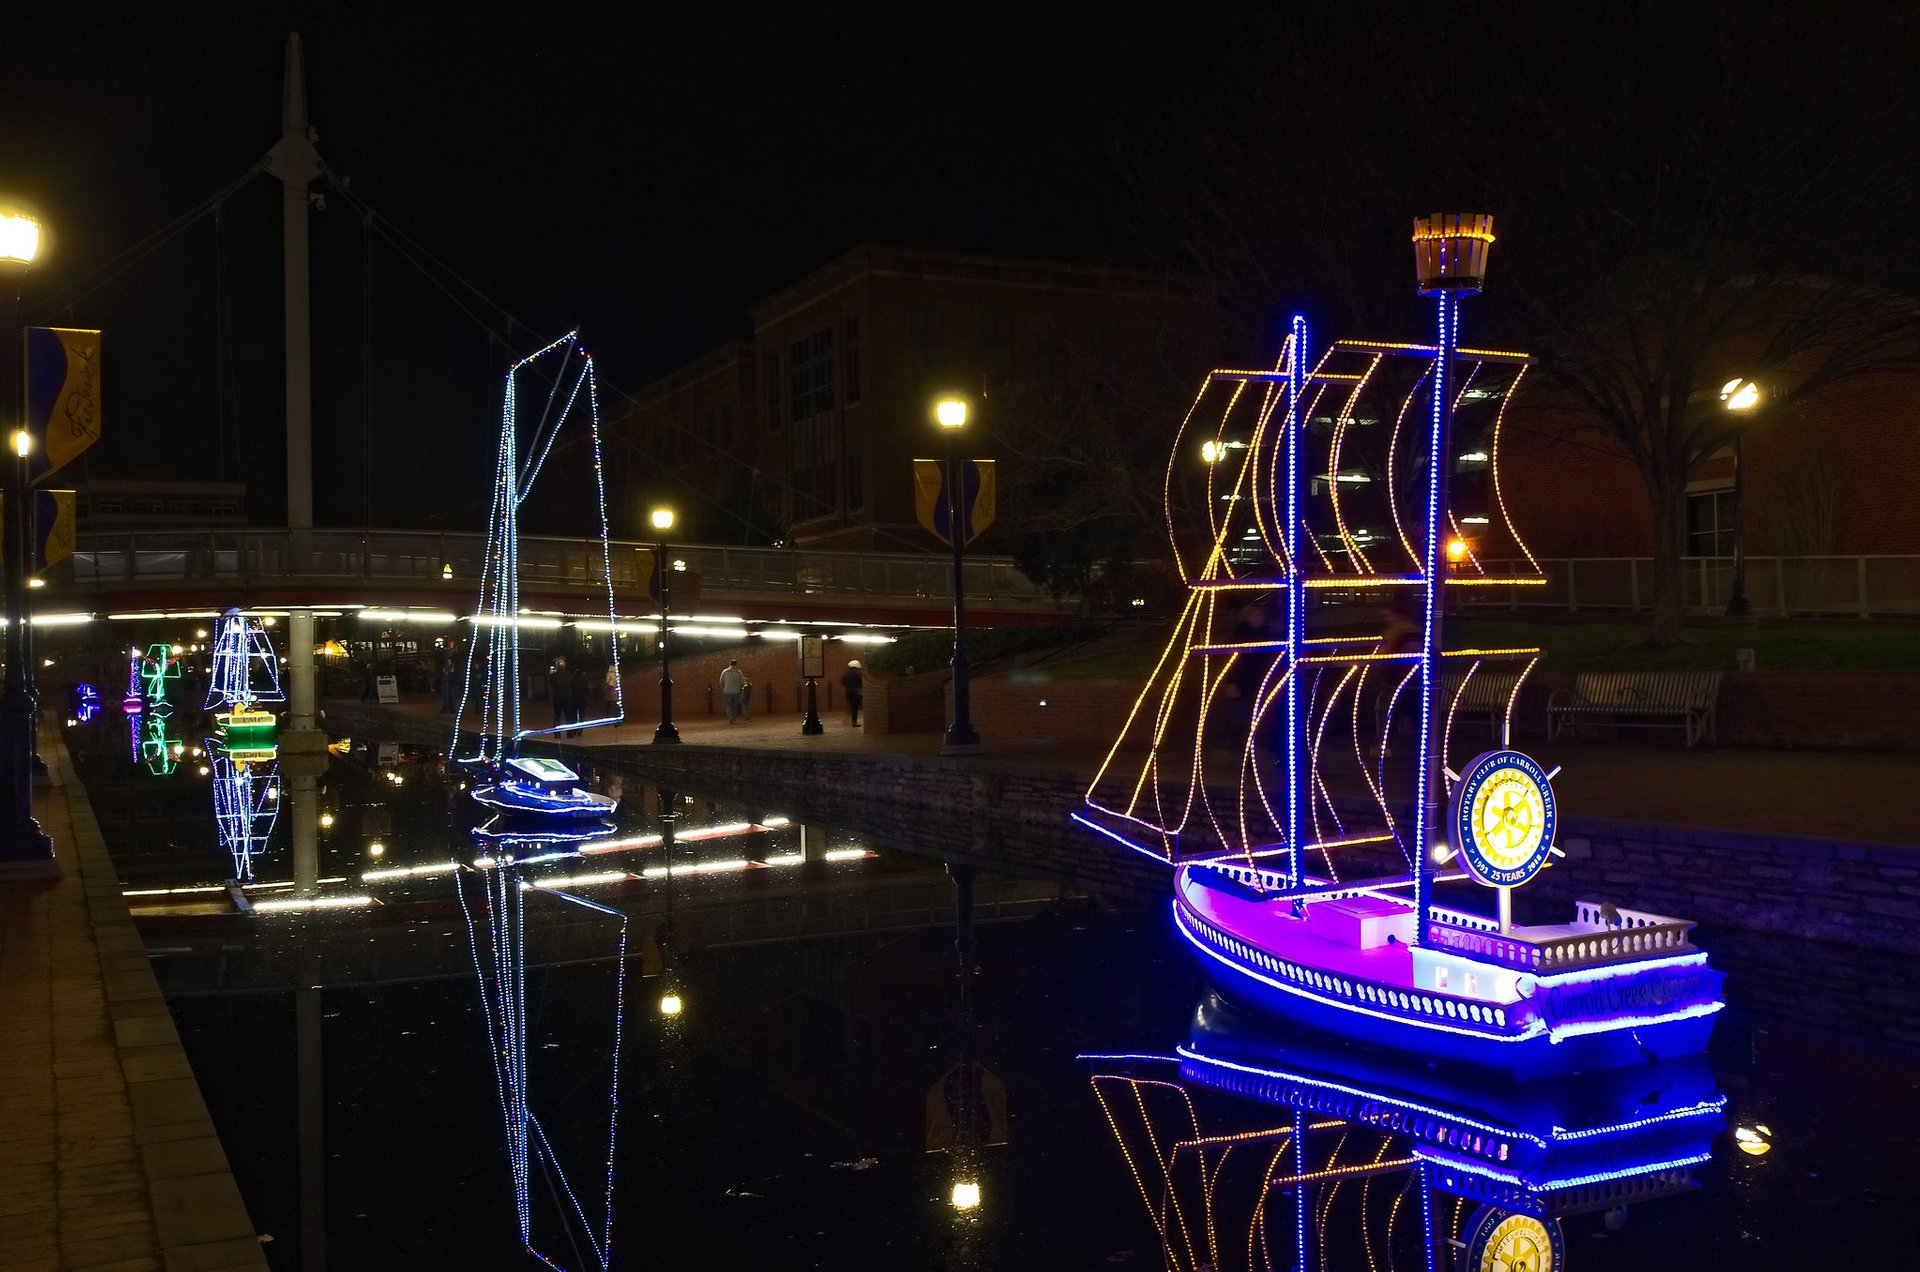 Boats on the Promenade all lit up for Christmas, Frederick 2020